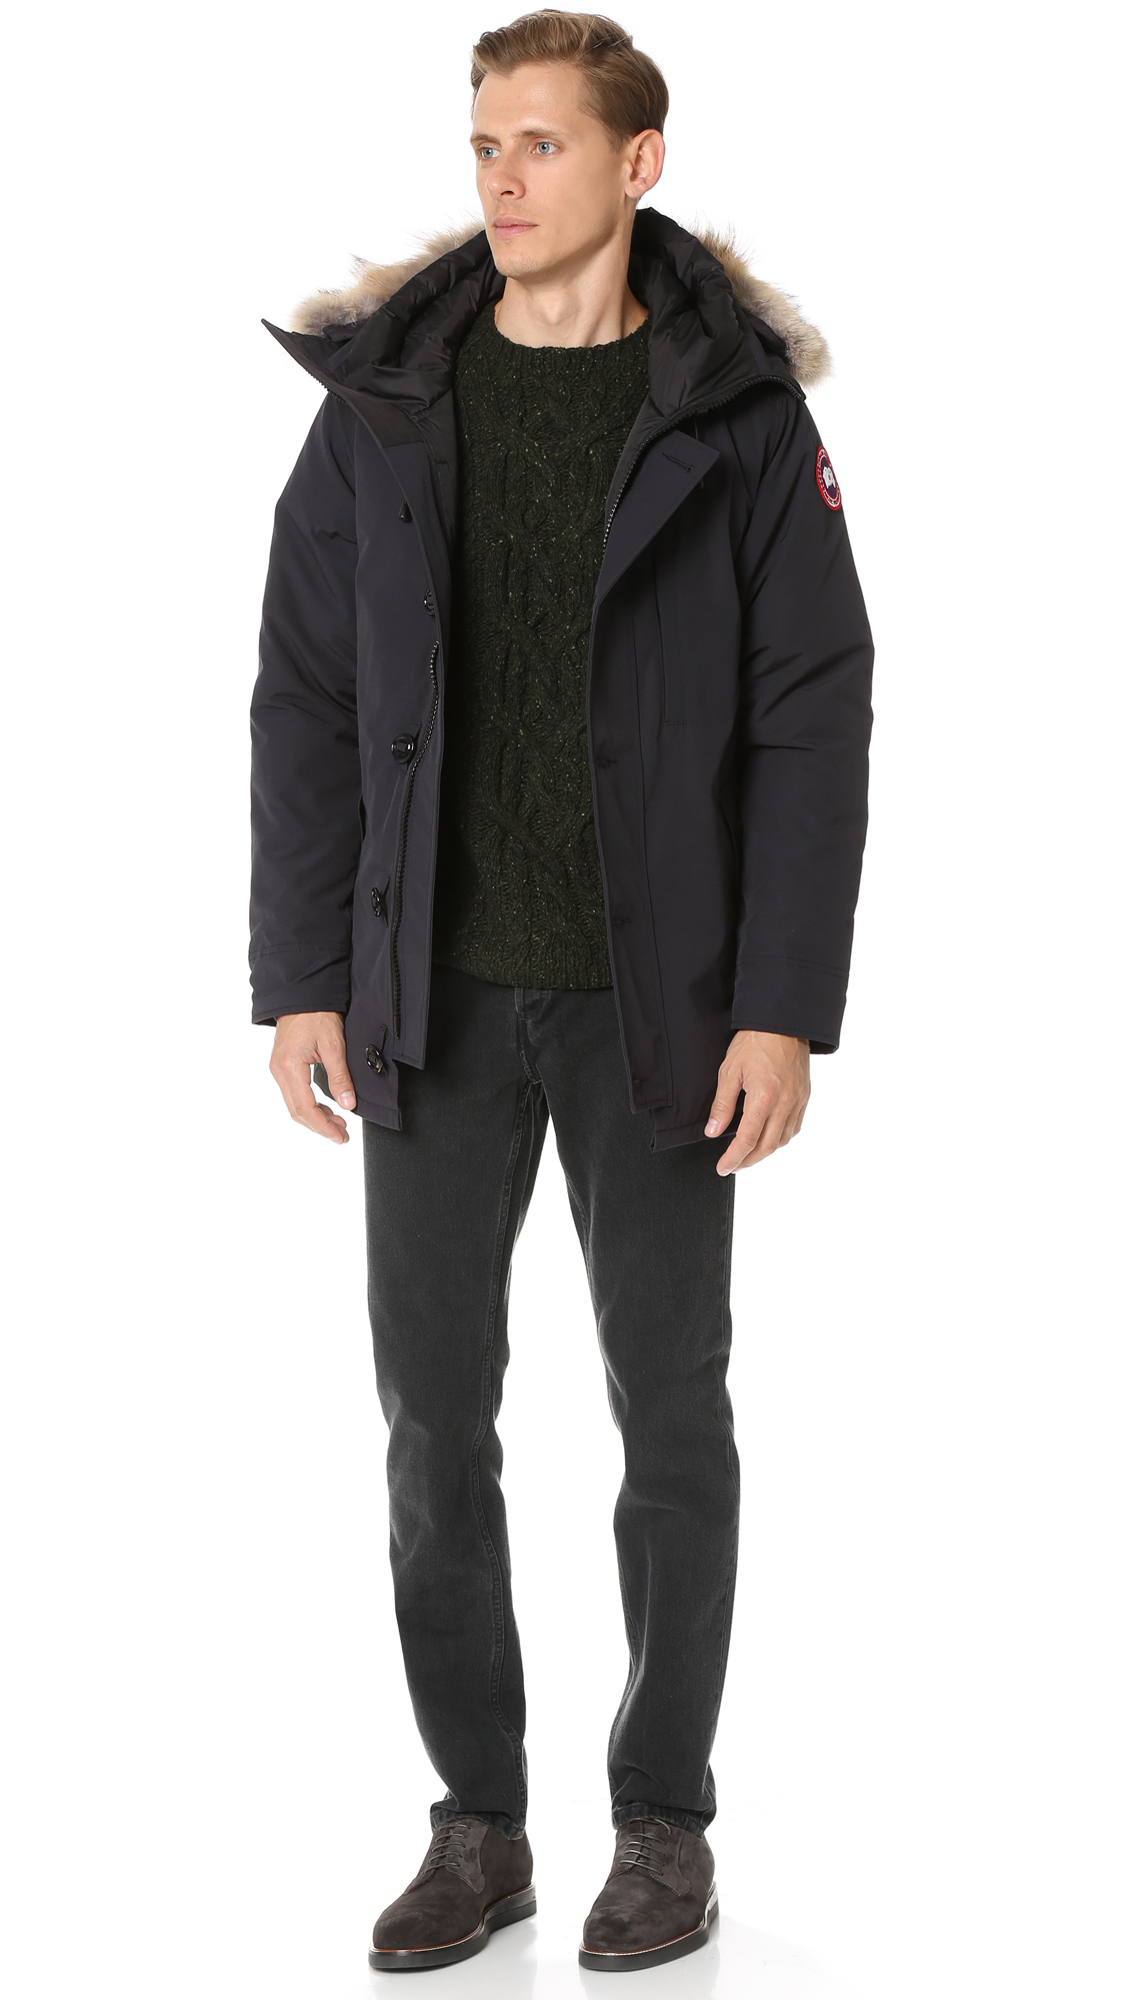 Canada Goose Chateau Parka with Fur | EAST DANE | Use Code: STOCKUP18 for Up to 25% Off